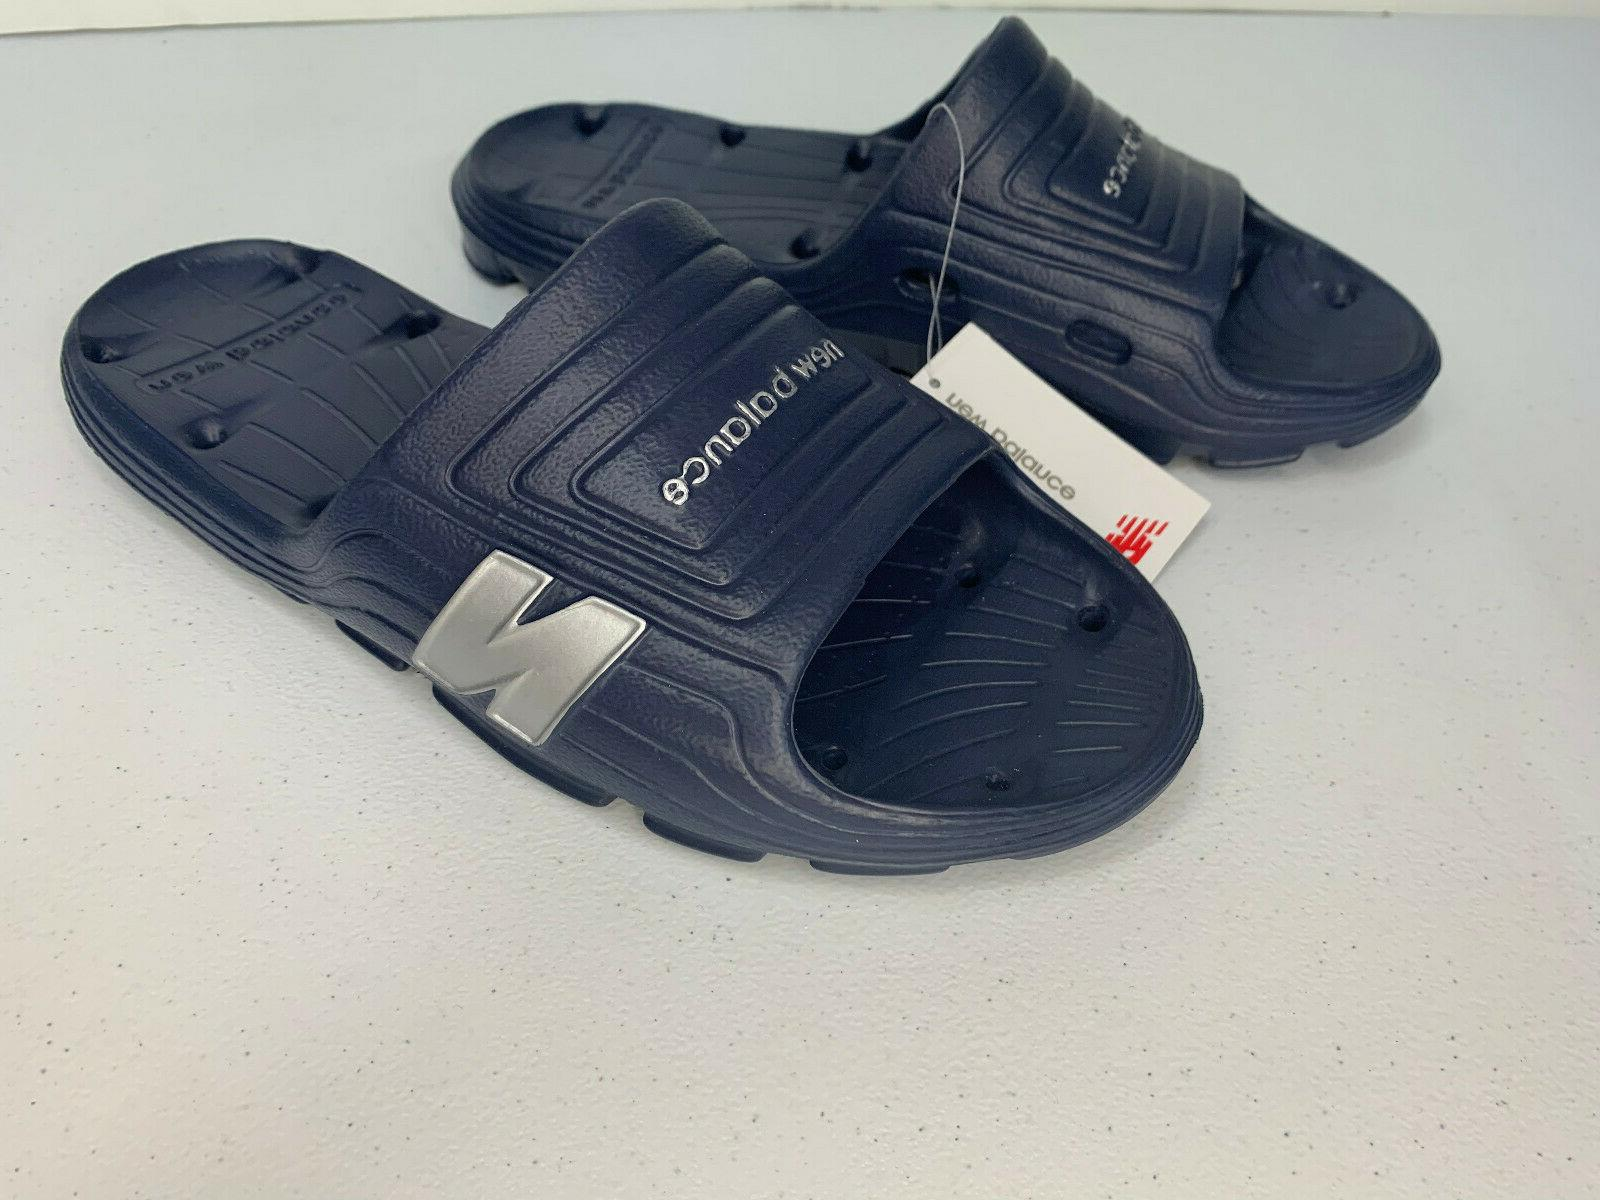 NEW 8 10 12 New Balance Float Men's Lightweight Sandal BLUE